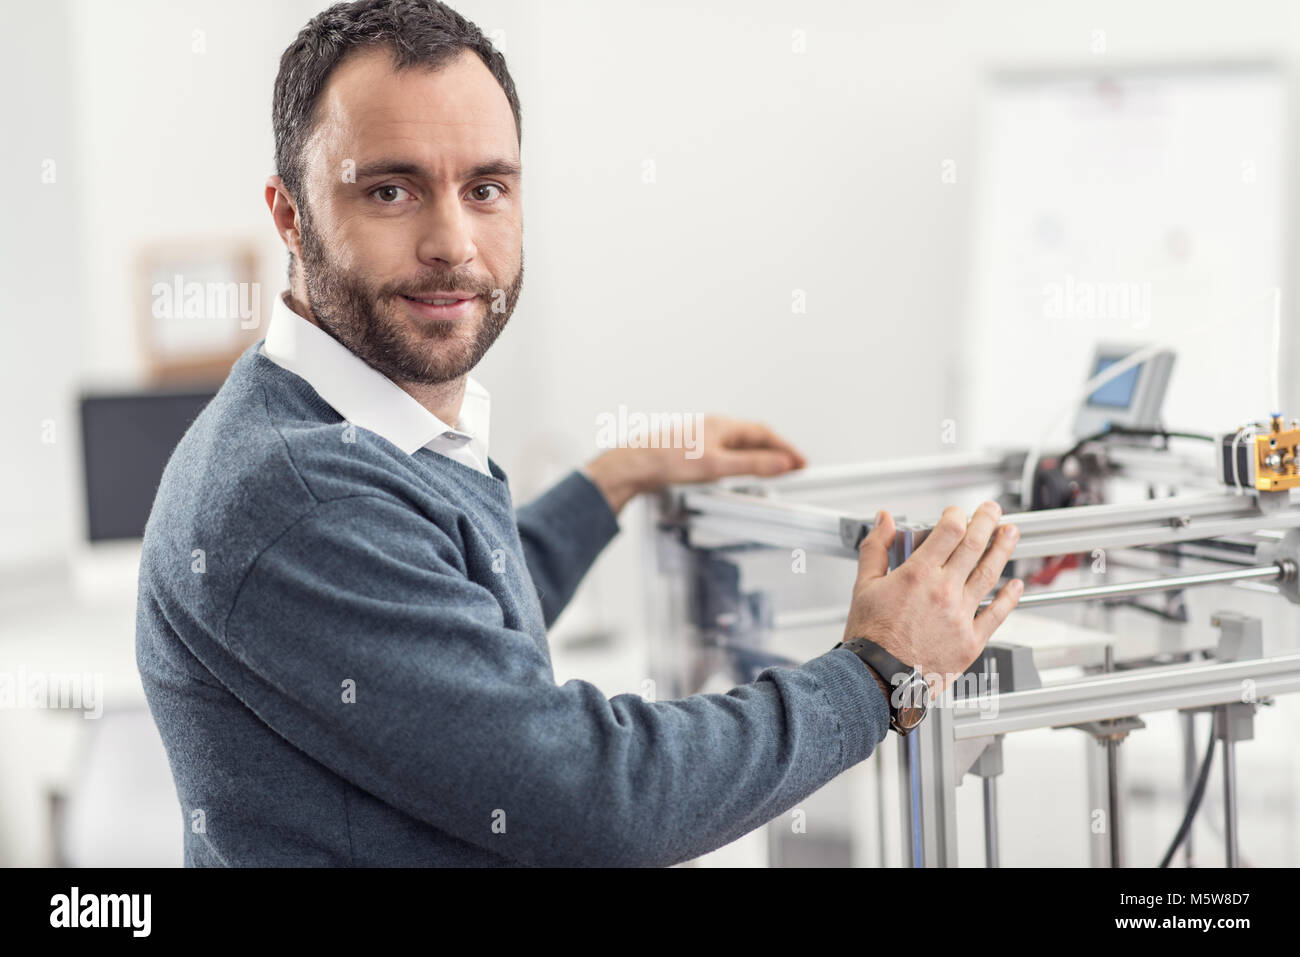 Pleasant young engineer posing with 3D printer in office - Stock Image